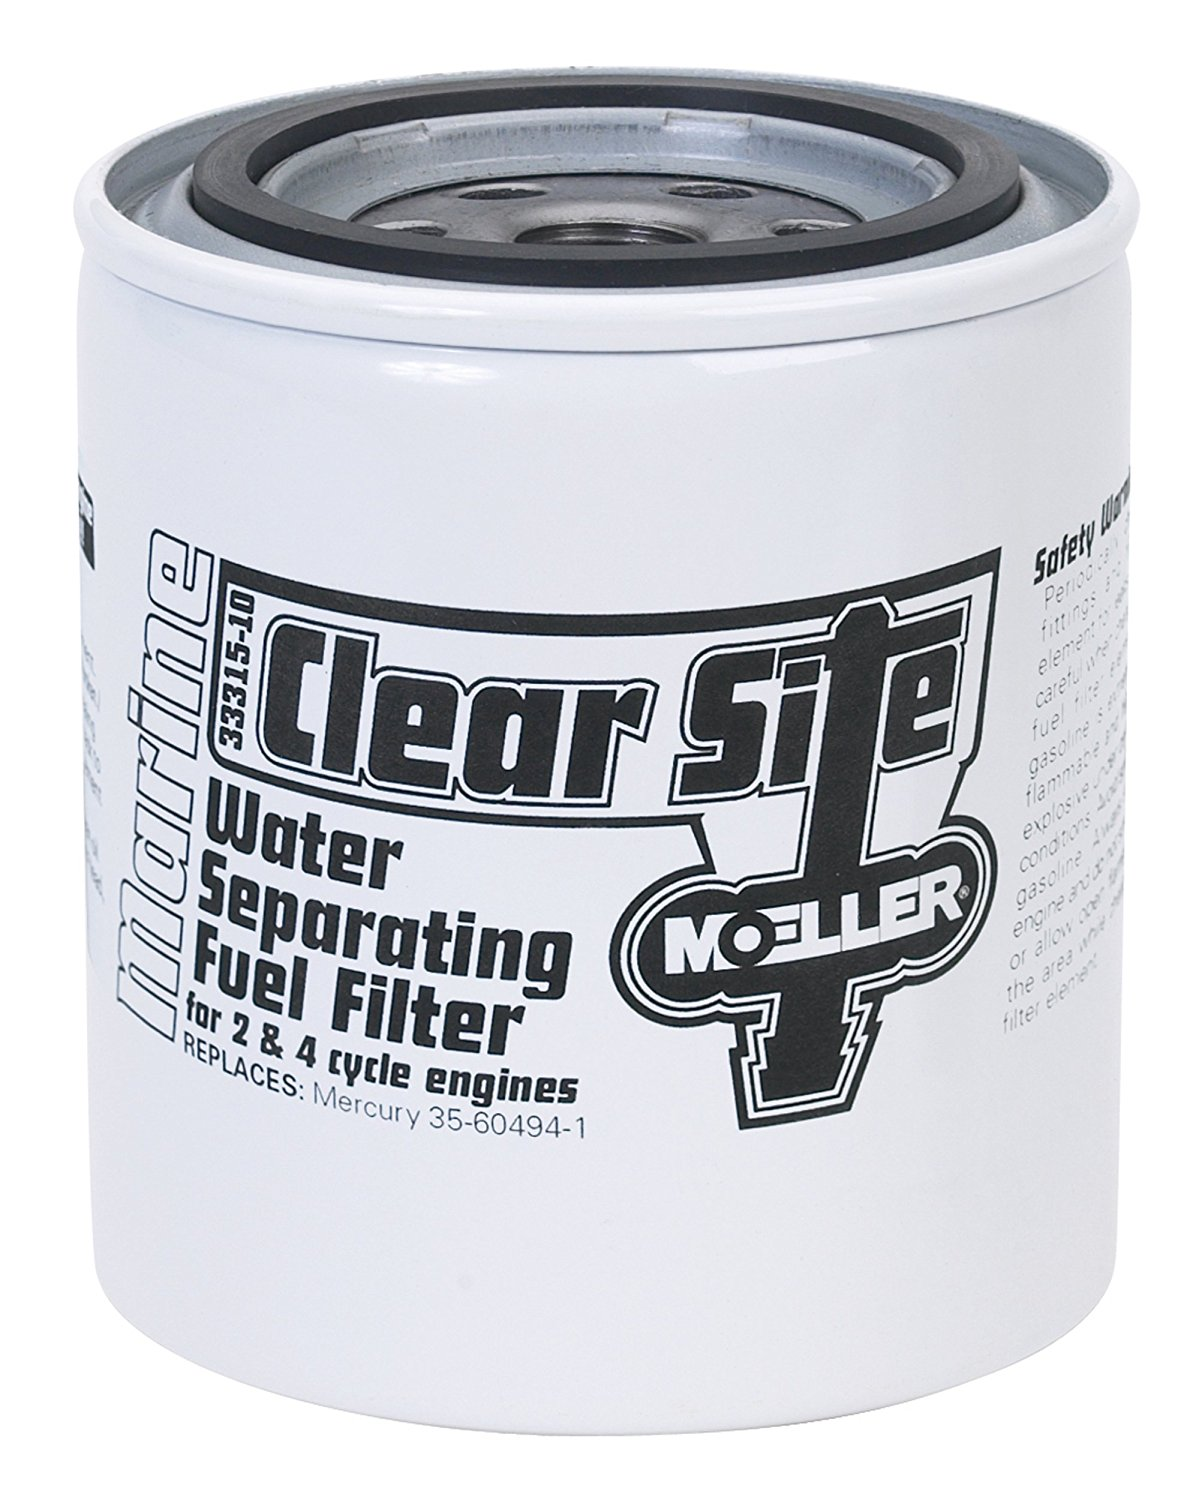 Moeller H2o Fuel Filter Can Only 033315 10 Clear Site Bowl By High Performance Filters Marine